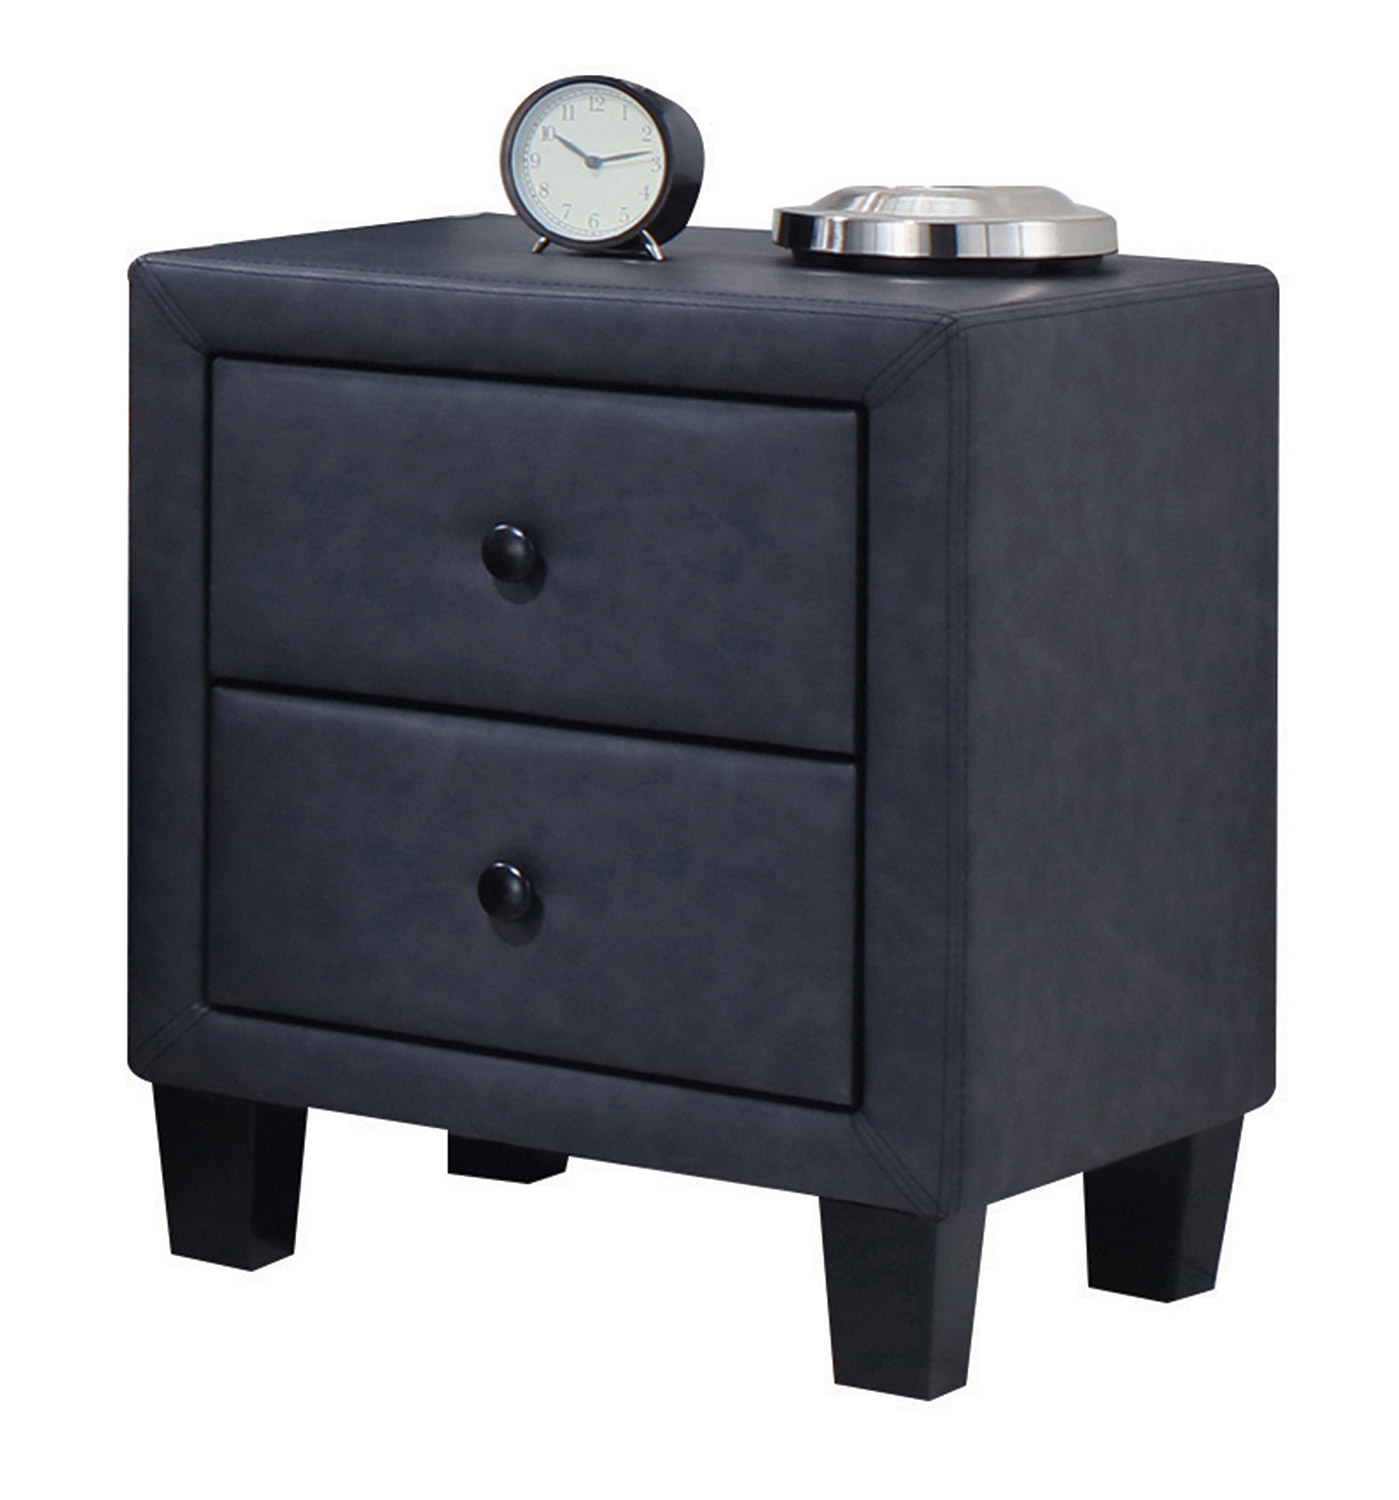 Acme Saveria Nightstand - 2-Tone Gray Vinyl